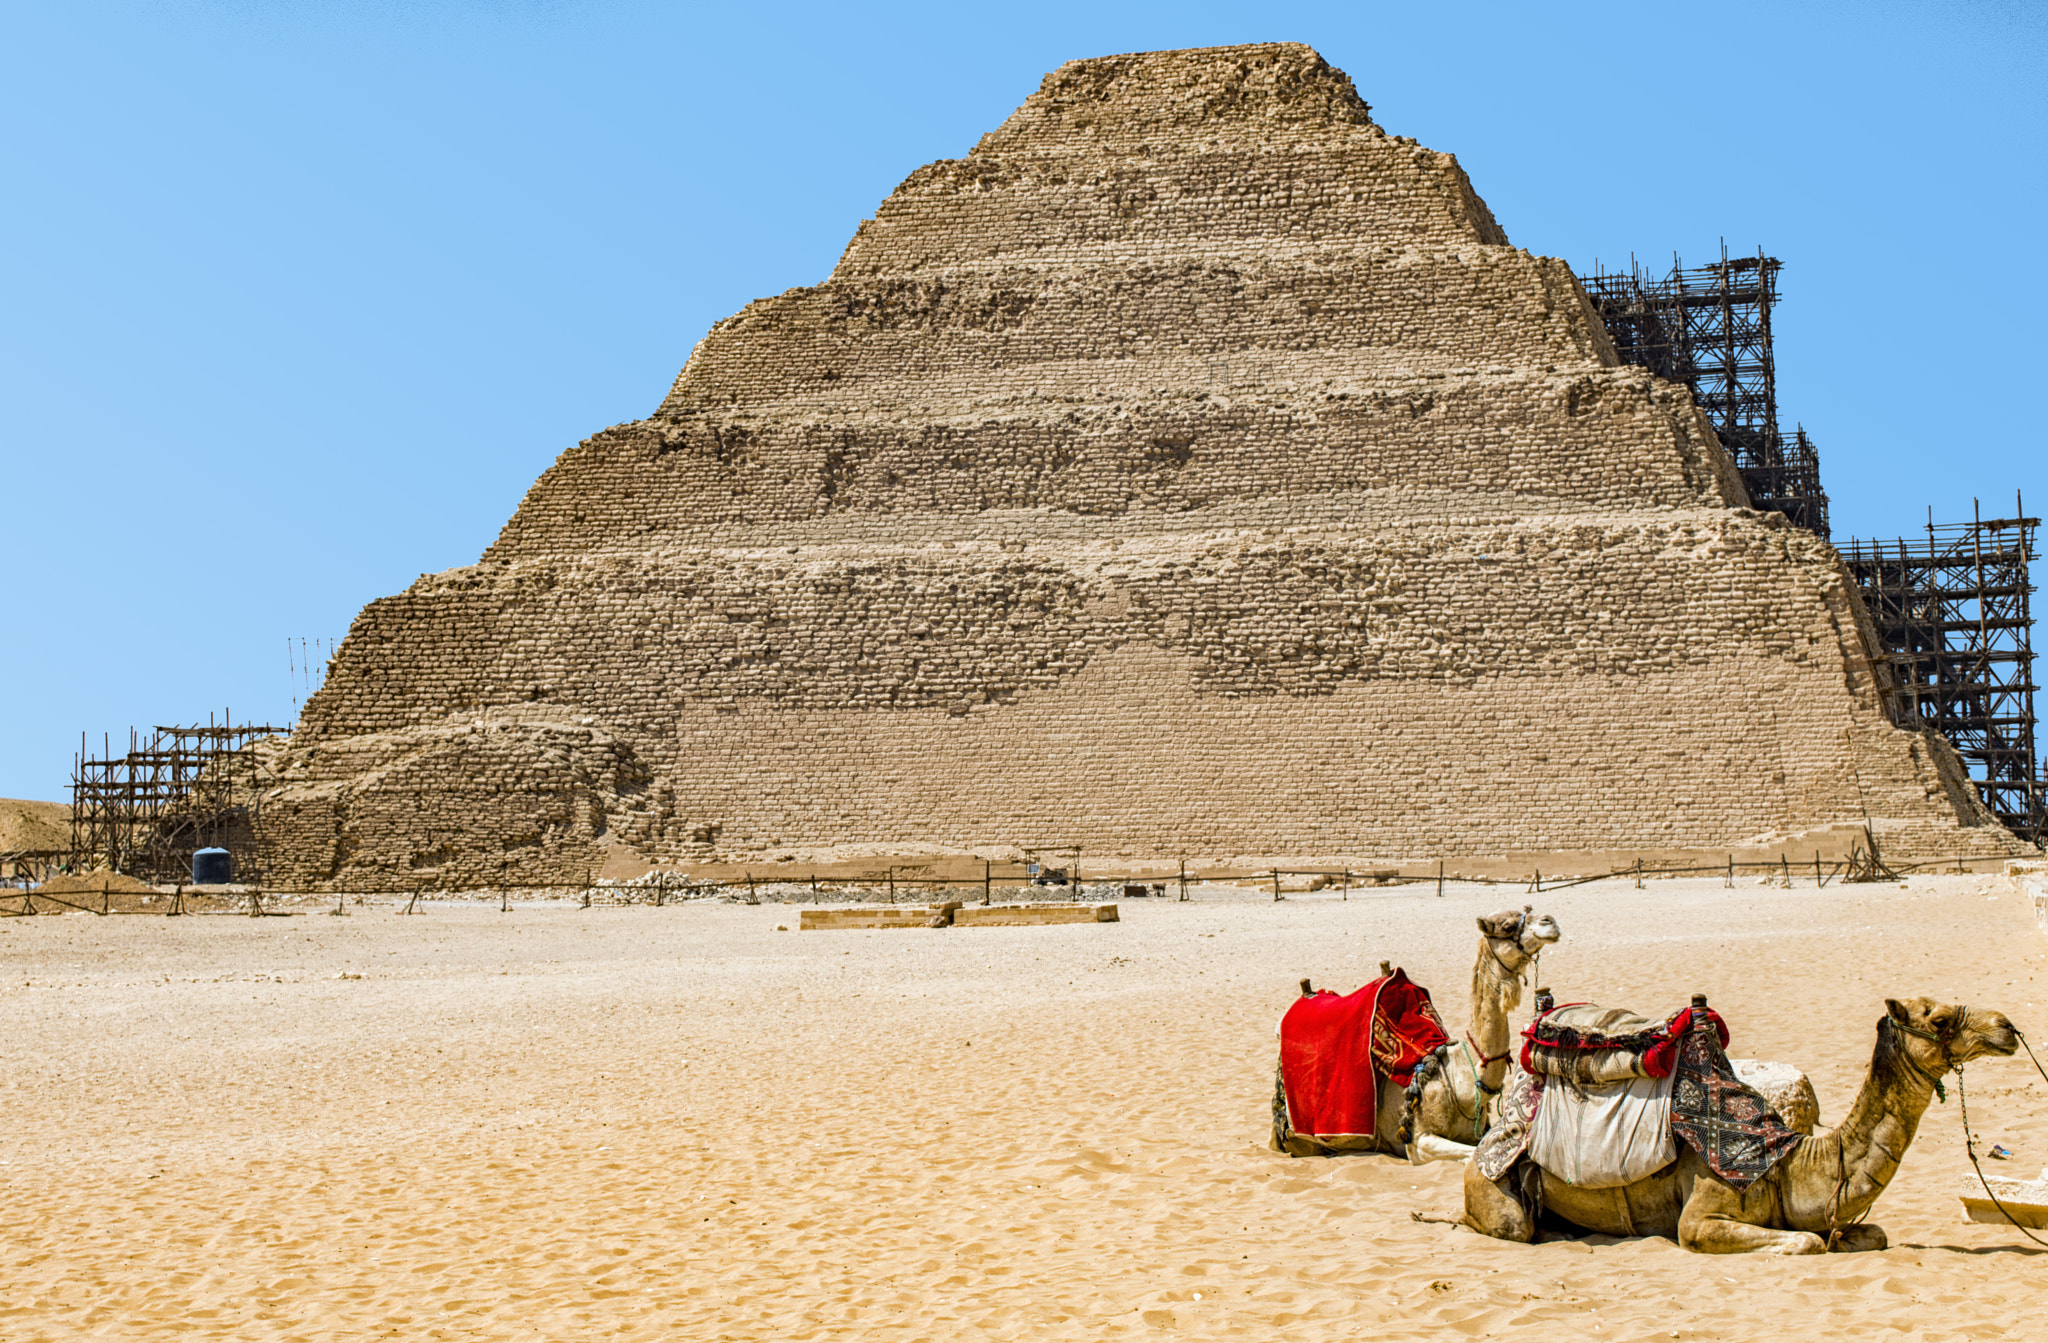 Stepped_Pyramid_Of_Sakkara_(235168869)